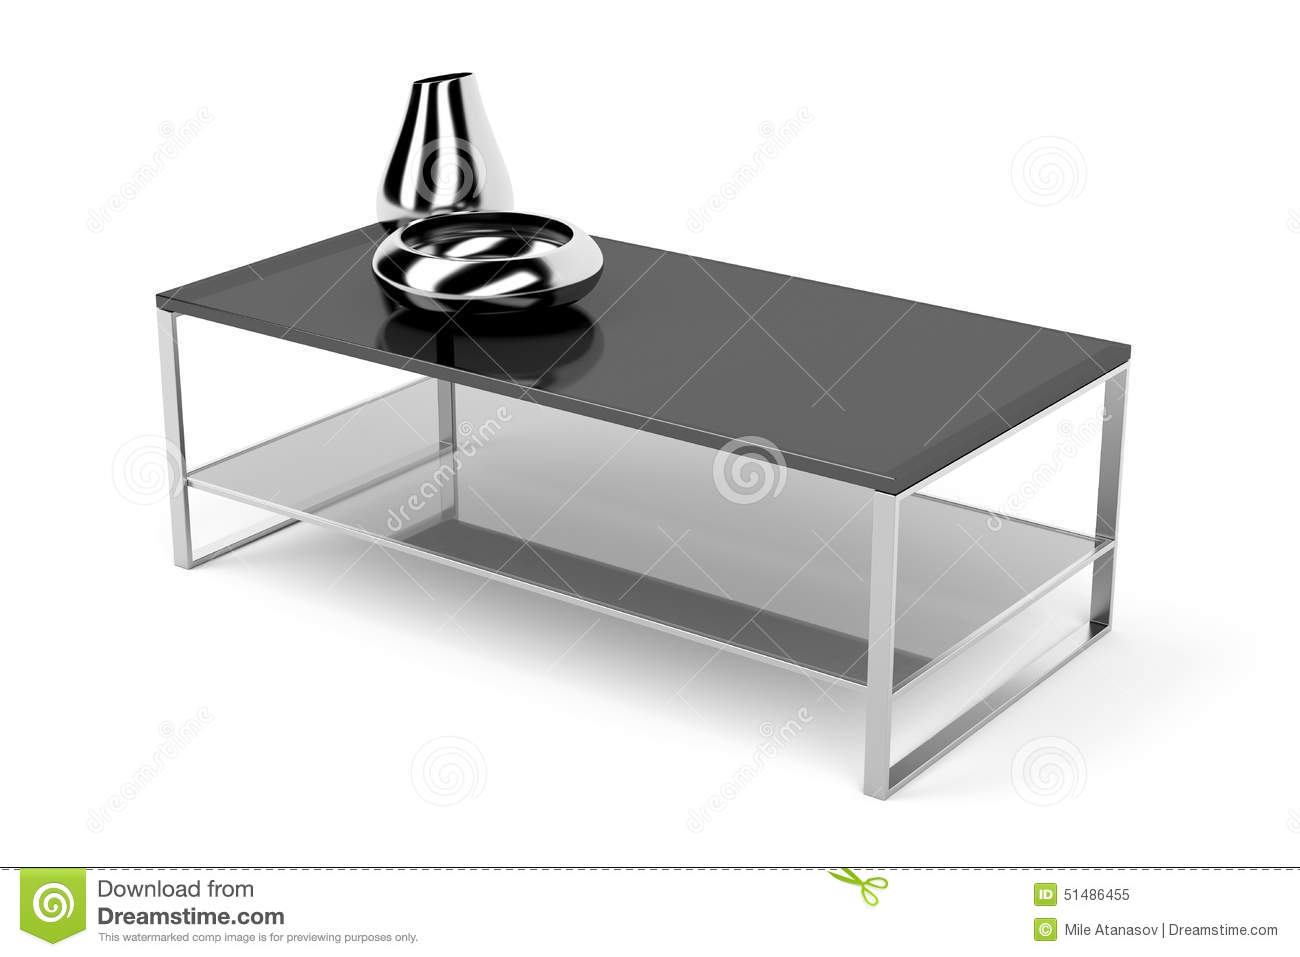 Black glass coffee table stock illustration image 51486455 for Black and white glass coffee table